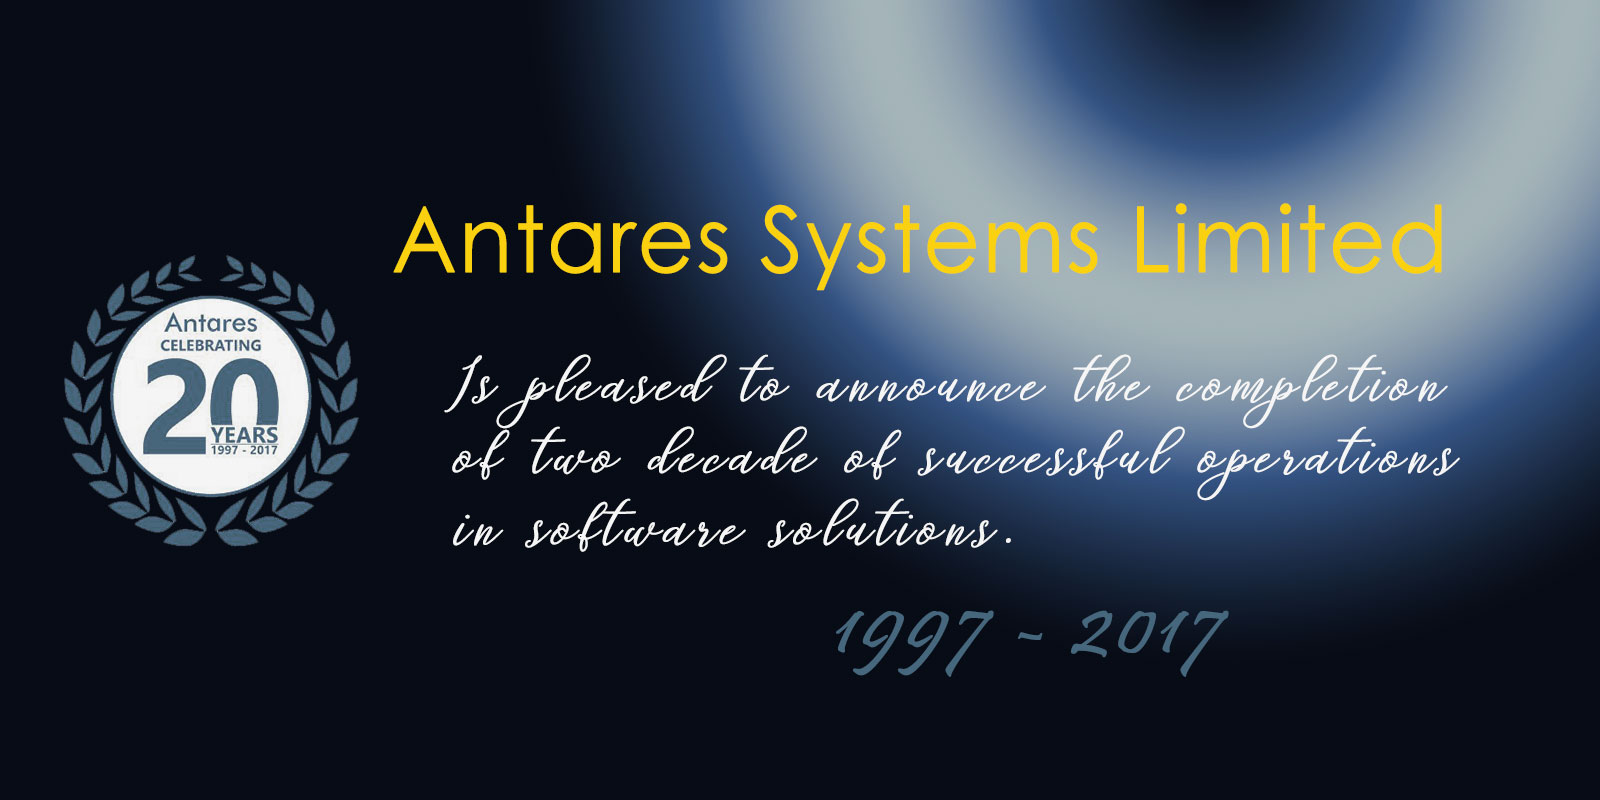 Antares Systems Ltd.